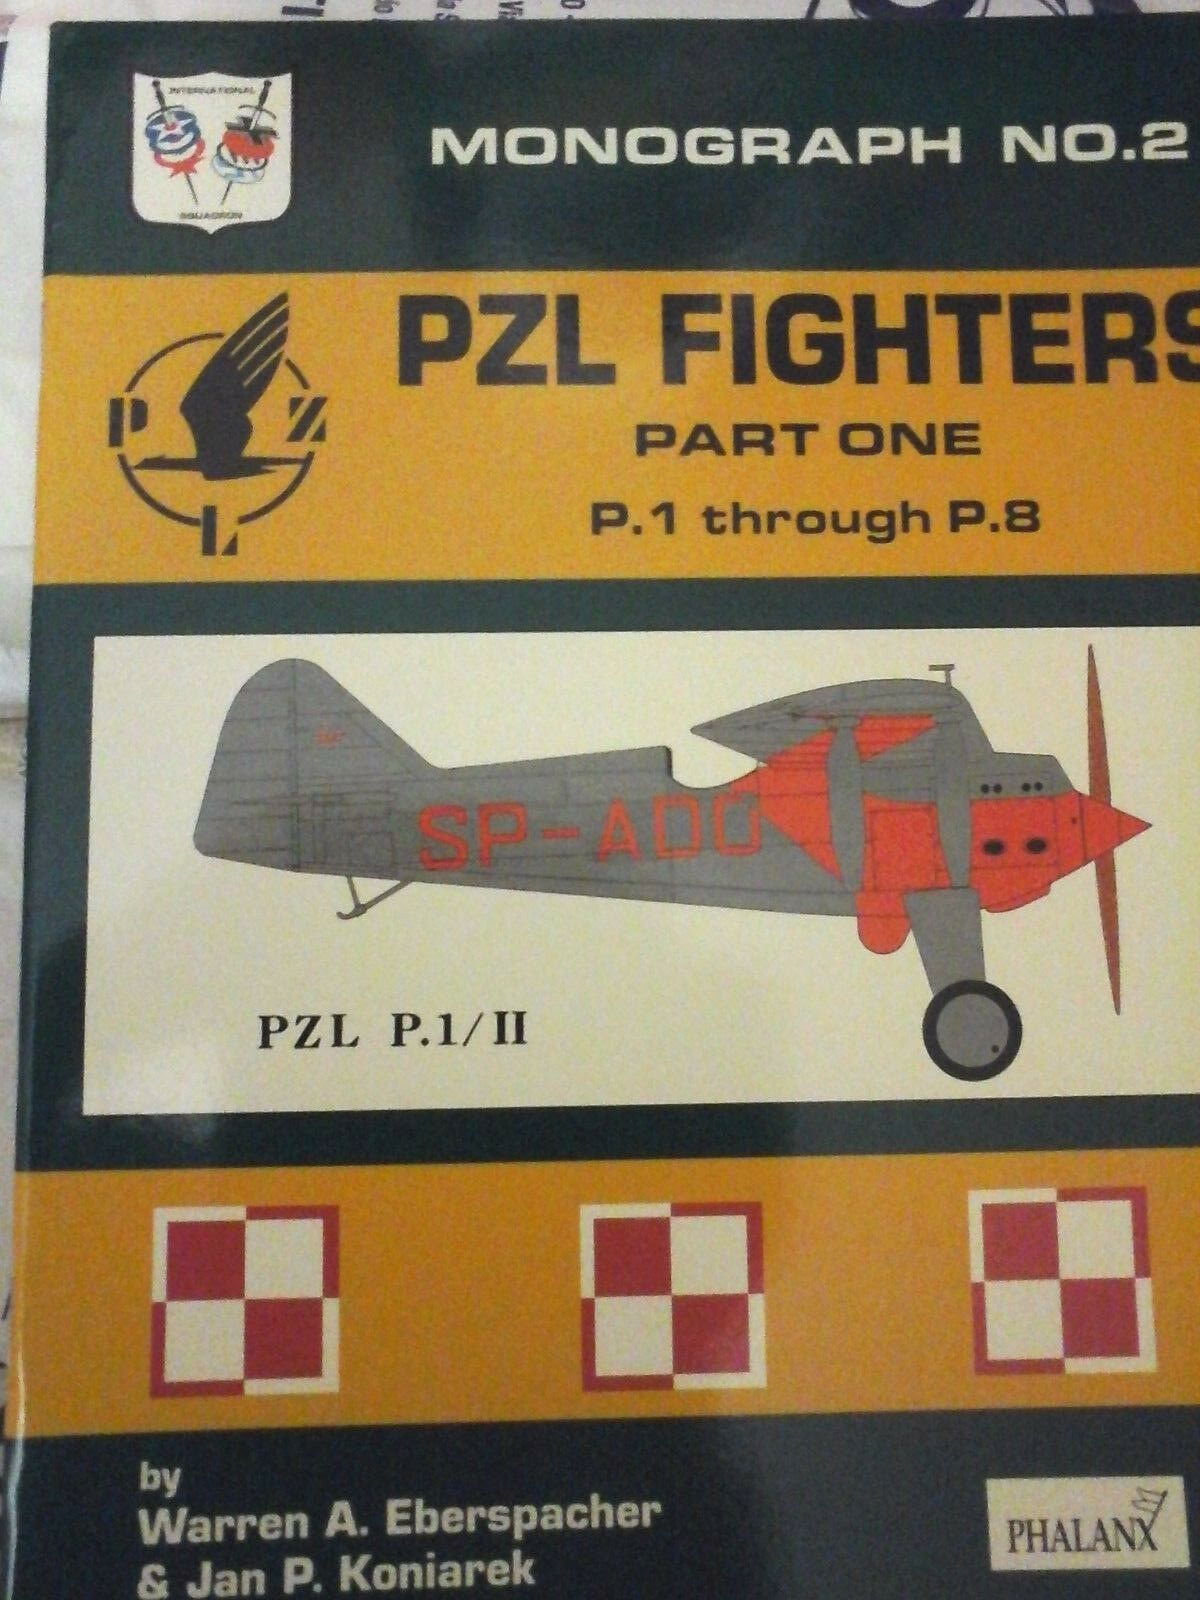 MONOGRAPH N.2- PZL FIGHTERS PART.1 -BY W. EBERSPACHER-PHALANX PUBLISHER